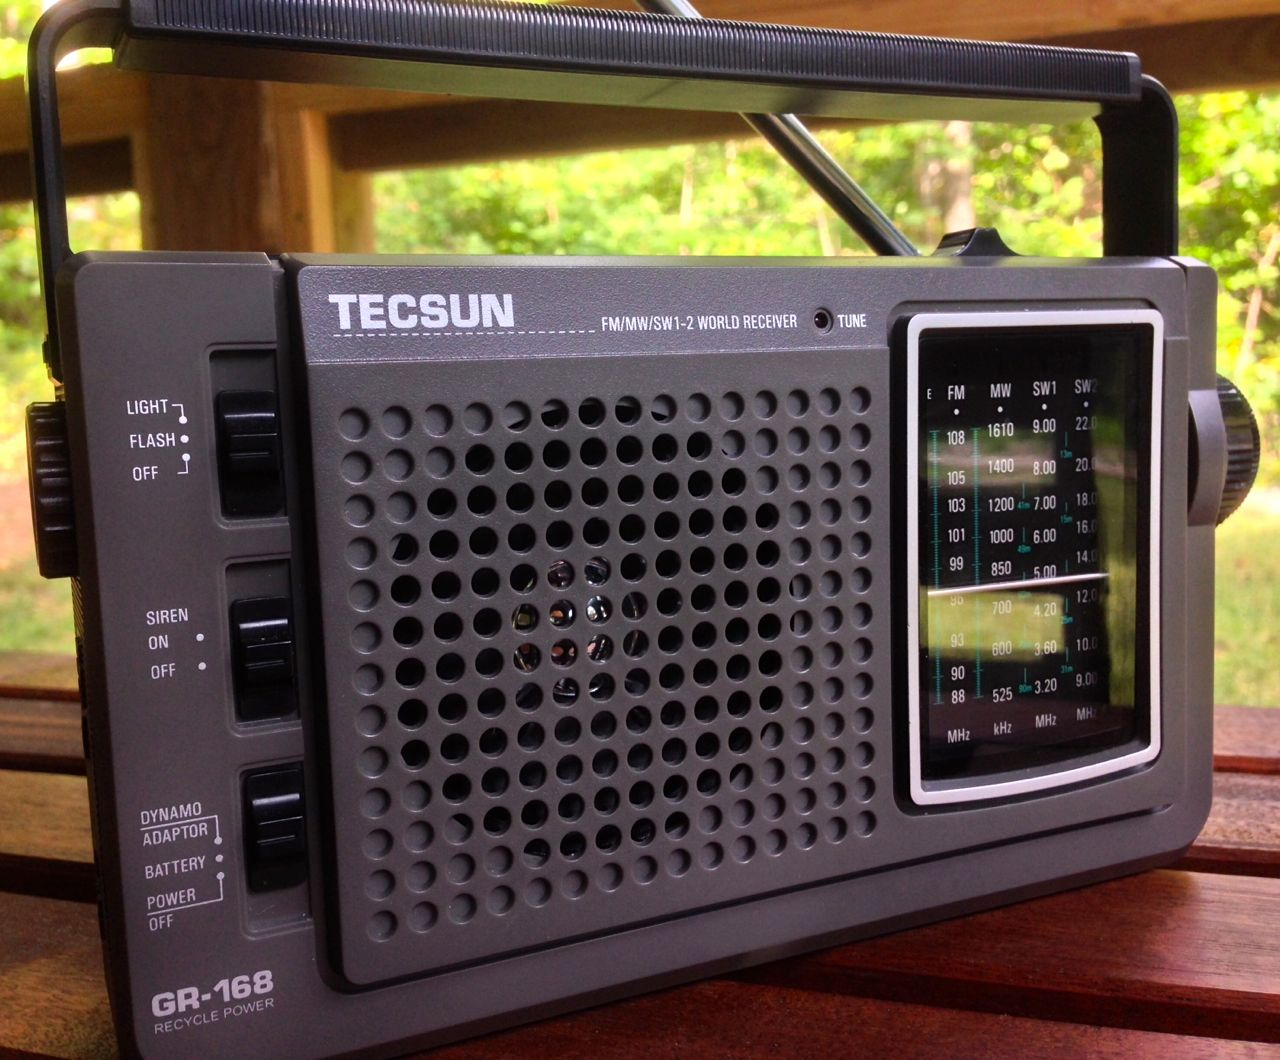 Living off-grid? The ideal shortwave radio system for you